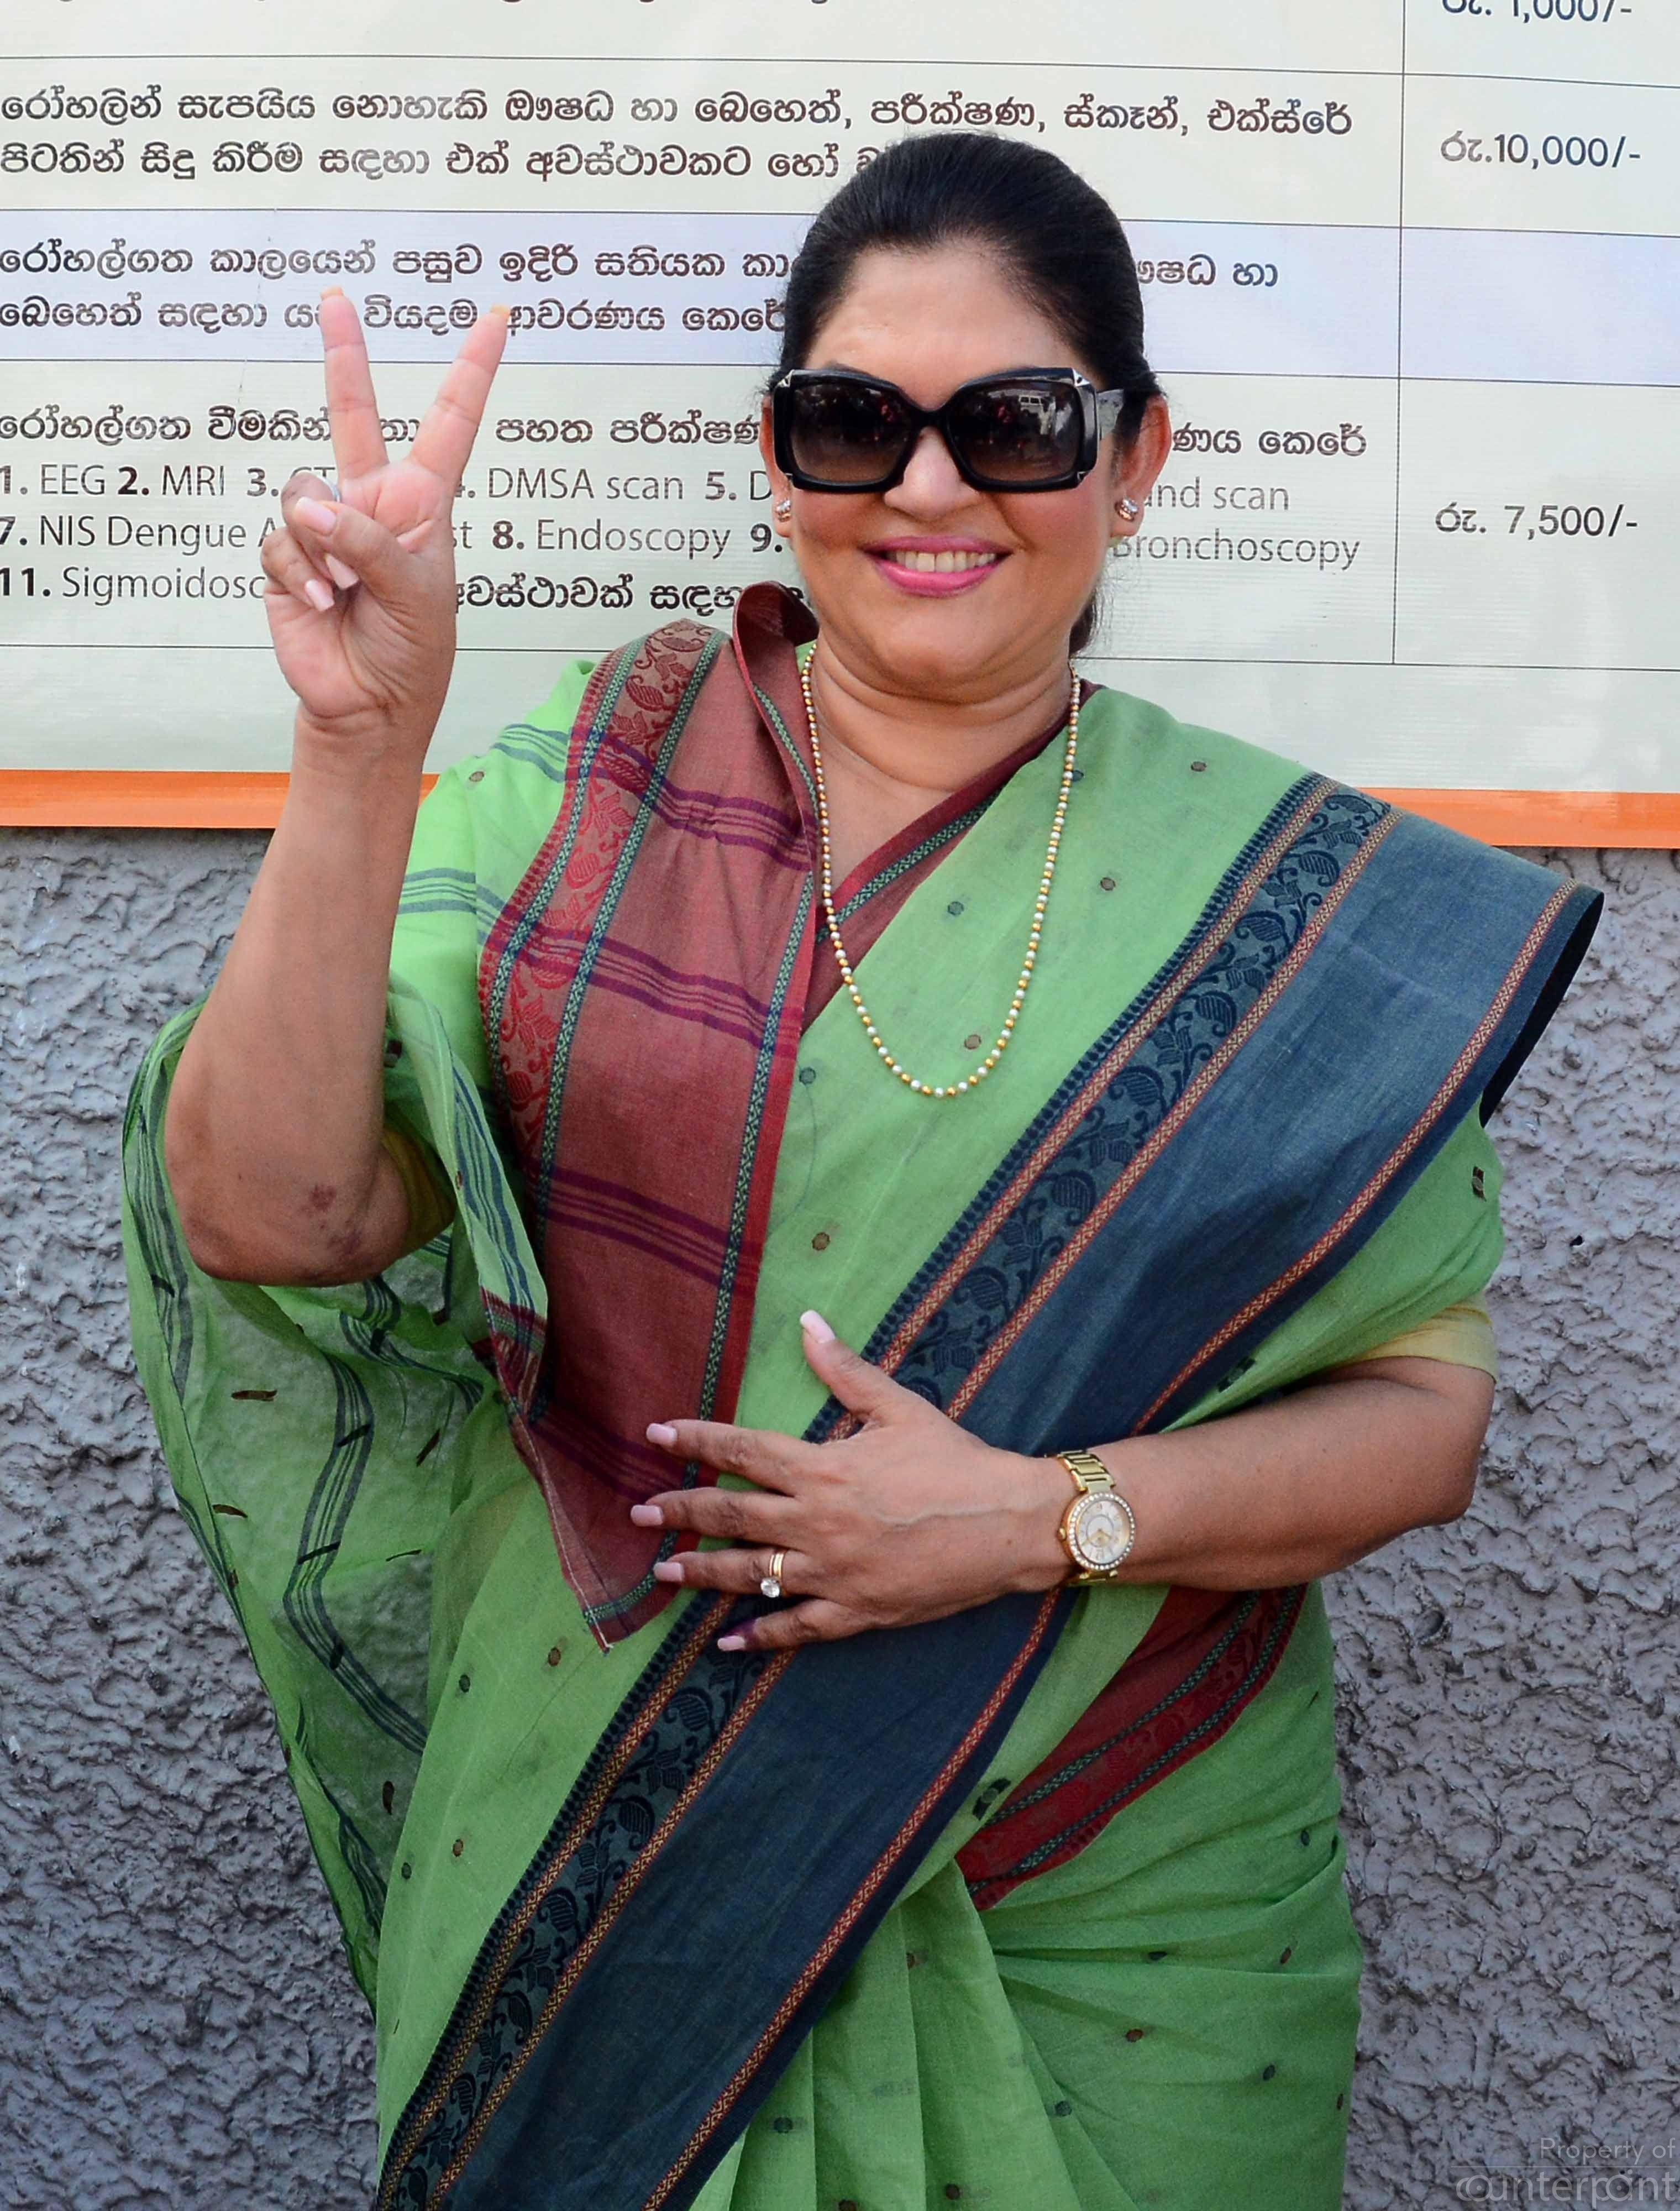 Rosy Senanayake, Mayor Elect, the first woman to be the Mayor of Colombo.